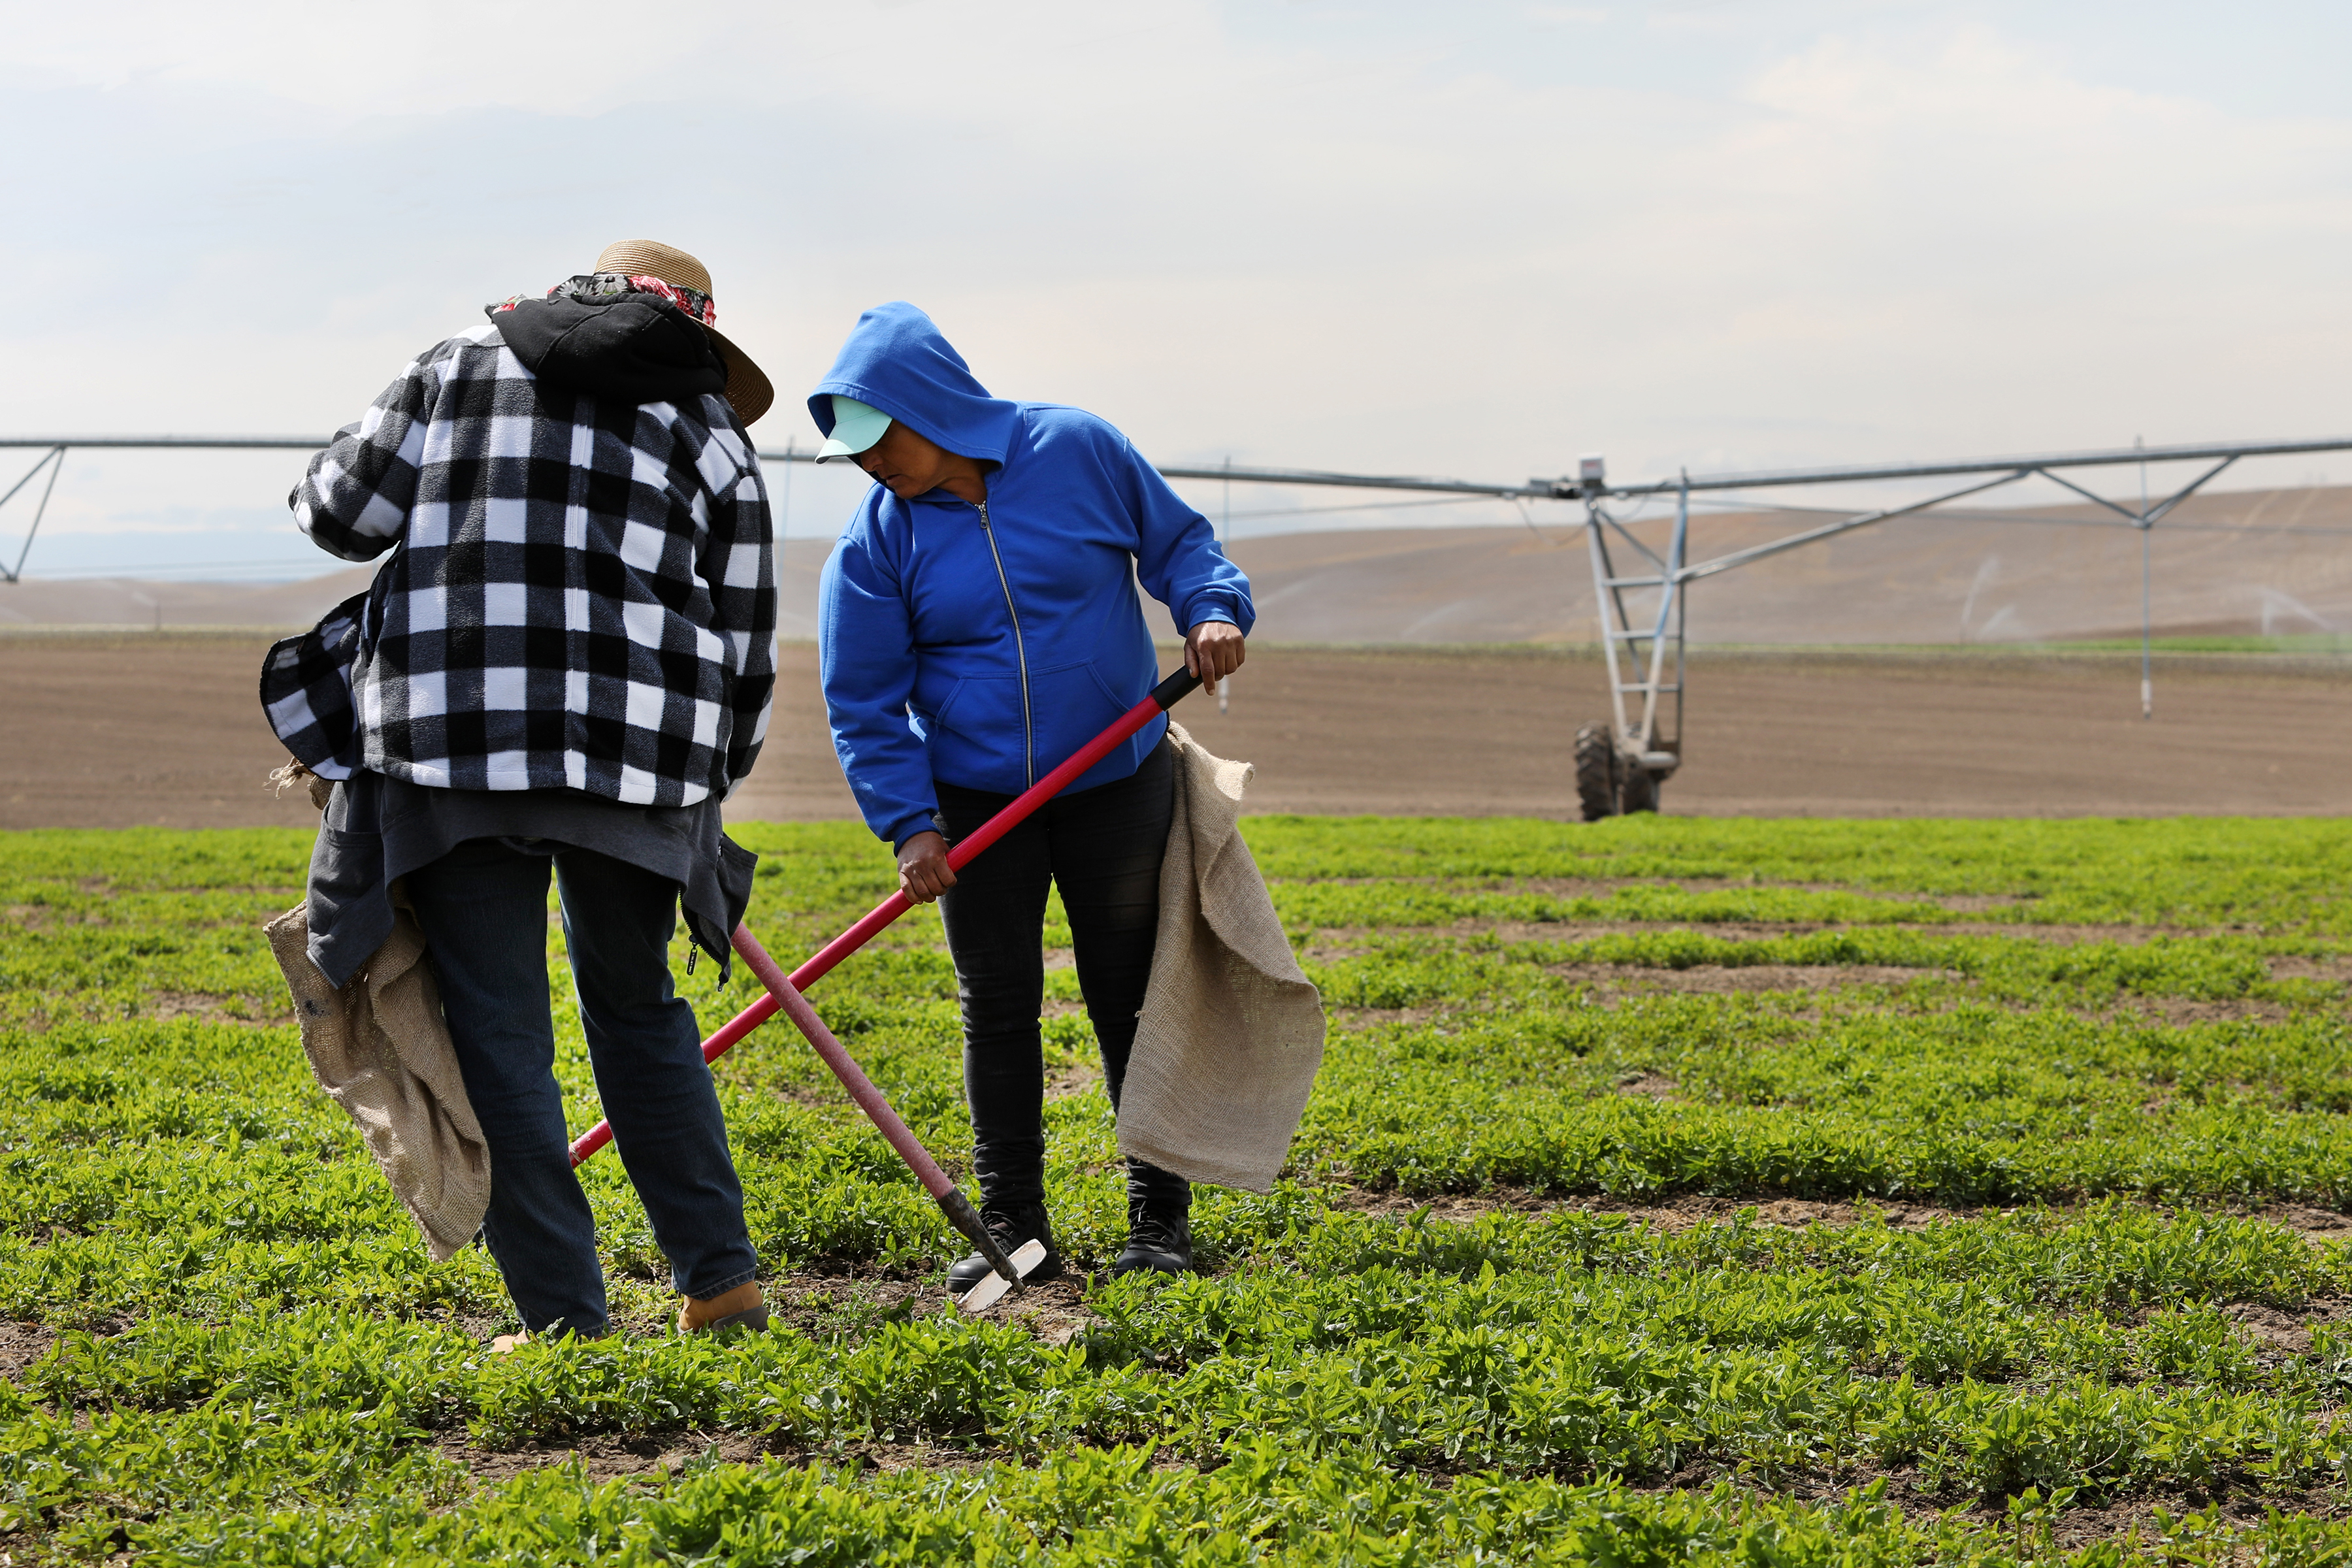 Two people working in the field of a farm with irrigation in the background.